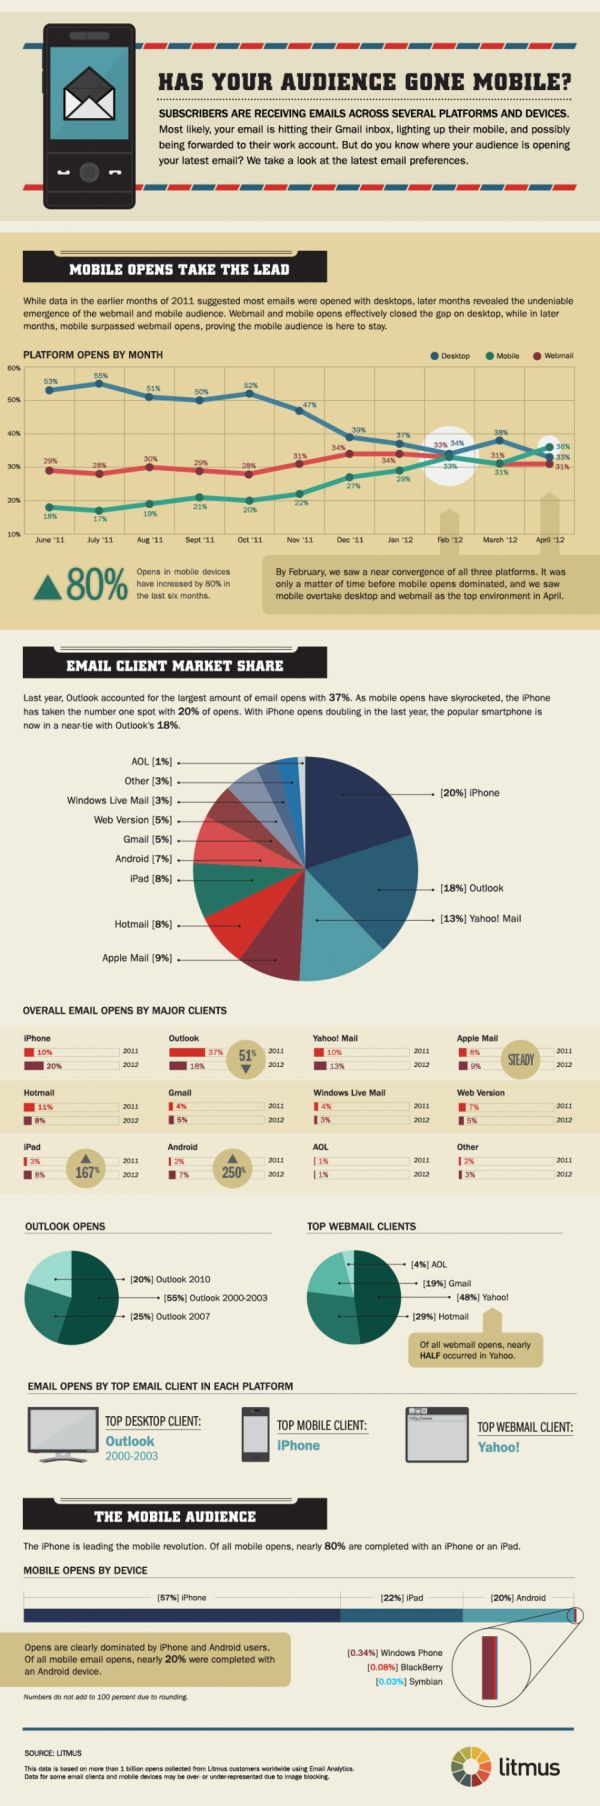 email-client-market-share-june-2012-940x2830